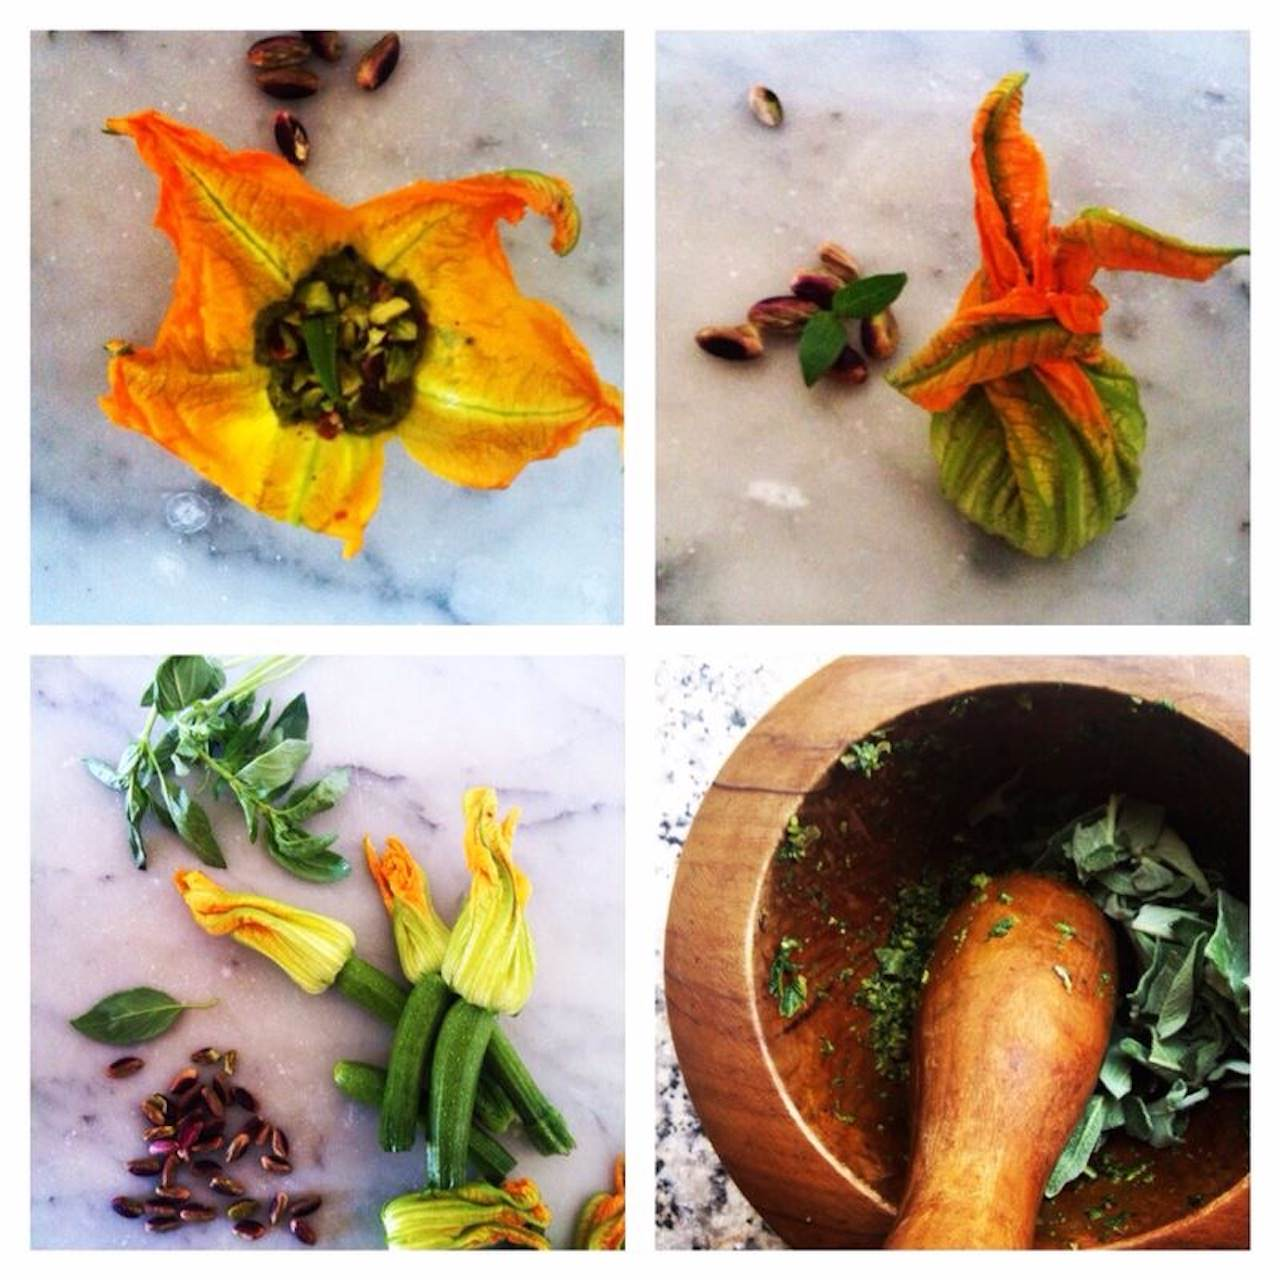 7-Workshop-Collage-Fiori-di-Zucca-2